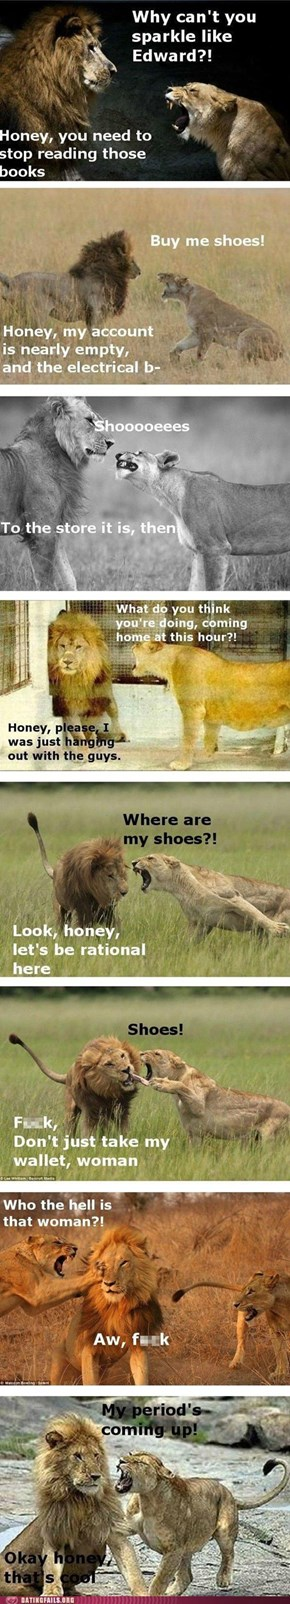 Lions Actually Really Like Shoes